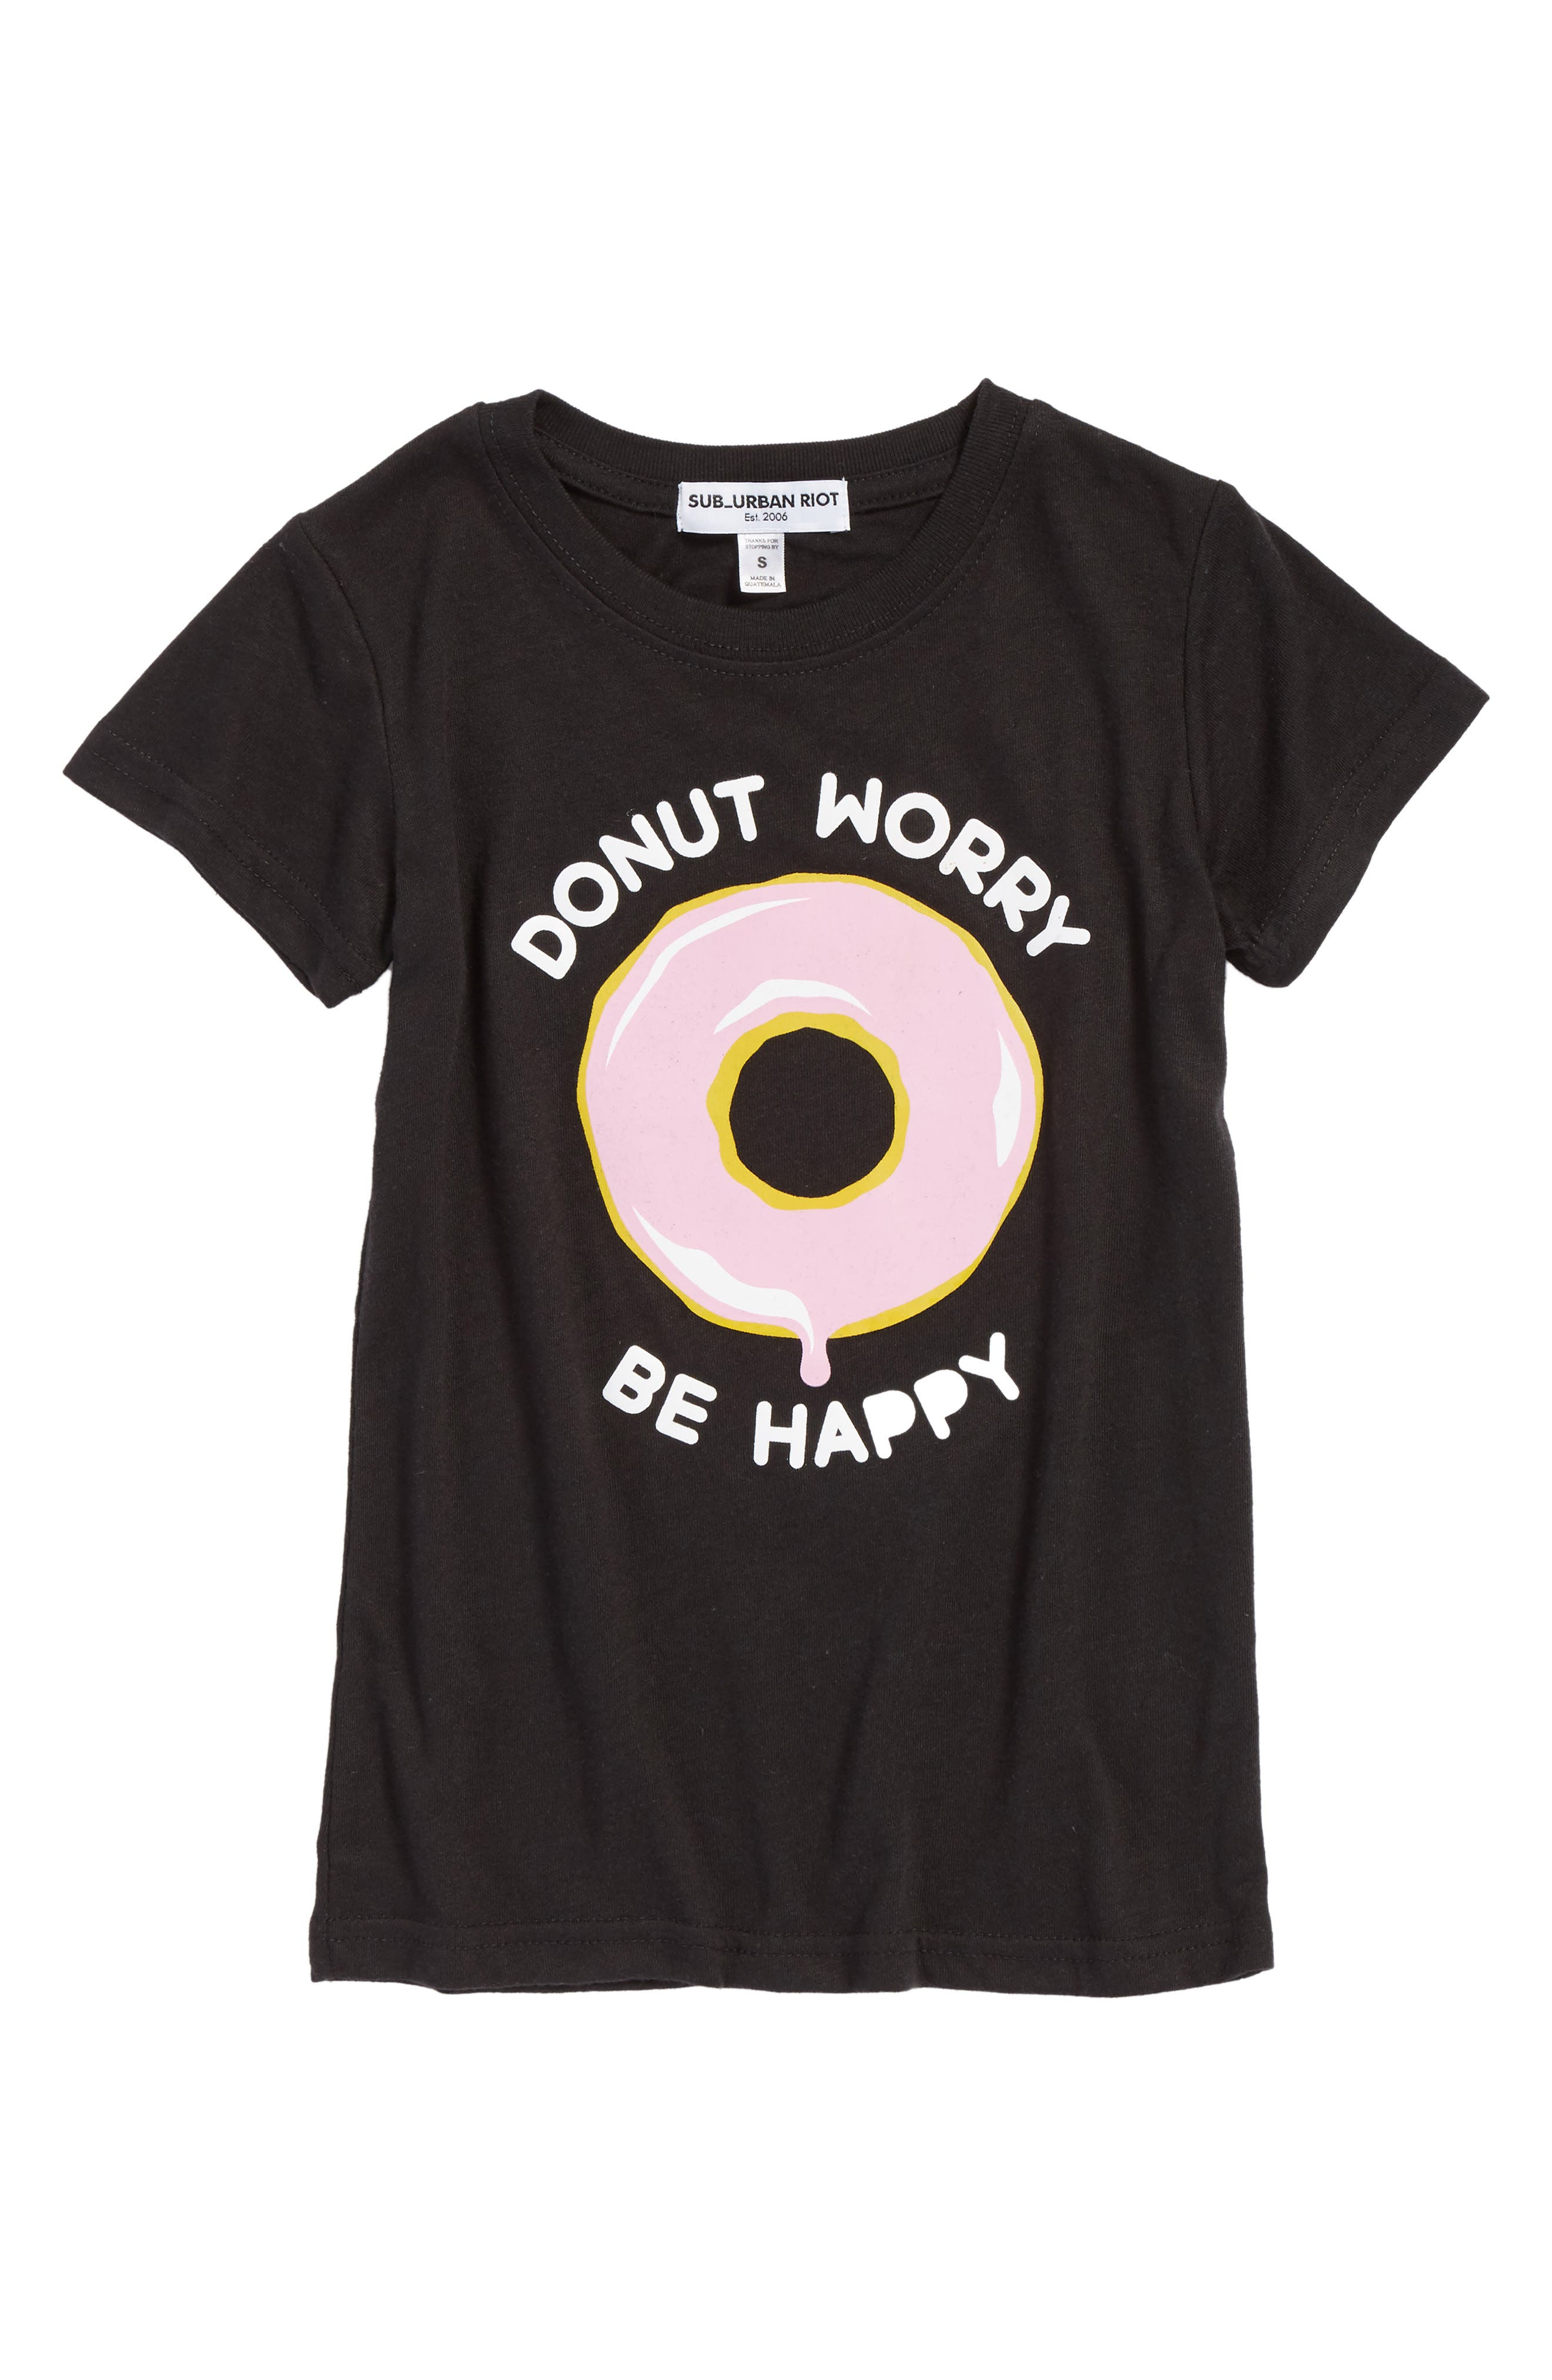 Alternate Image 1 Selected - Sub_Urban Riot Donut Worry Graphic Tee (Big Girls)